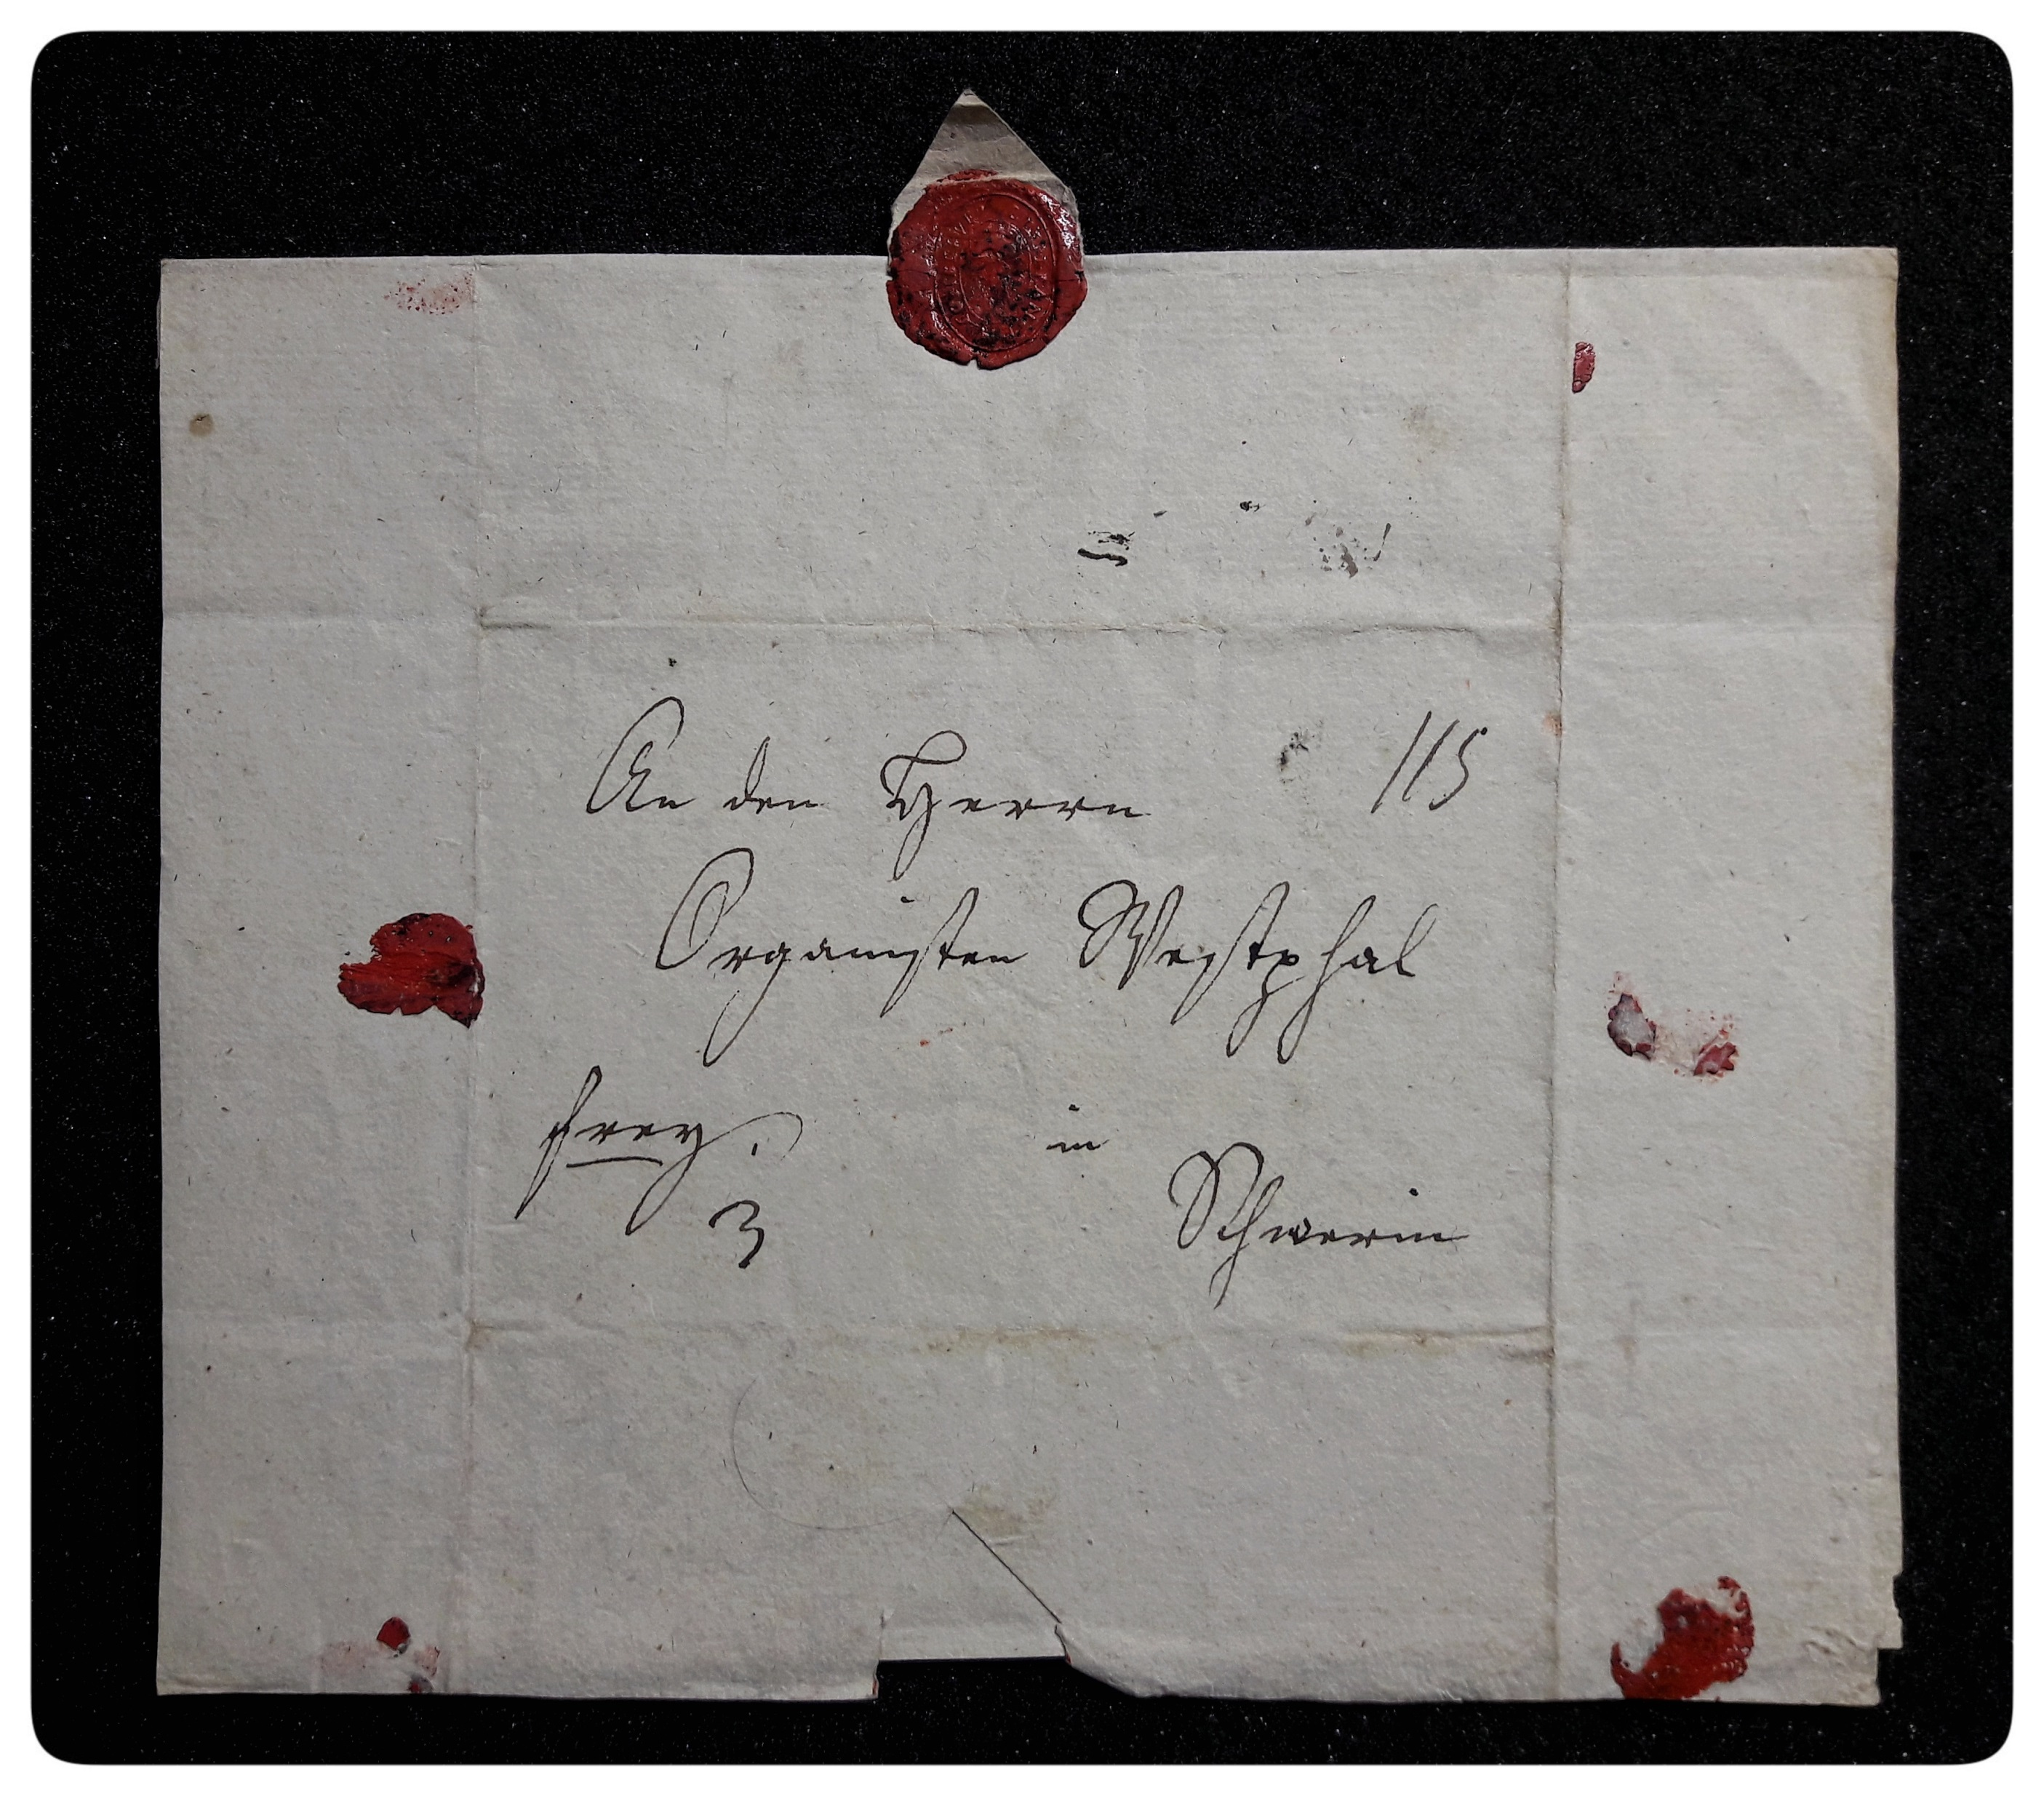 Envelope with the seal of C.P.E. Bach's widow Johanna Maria